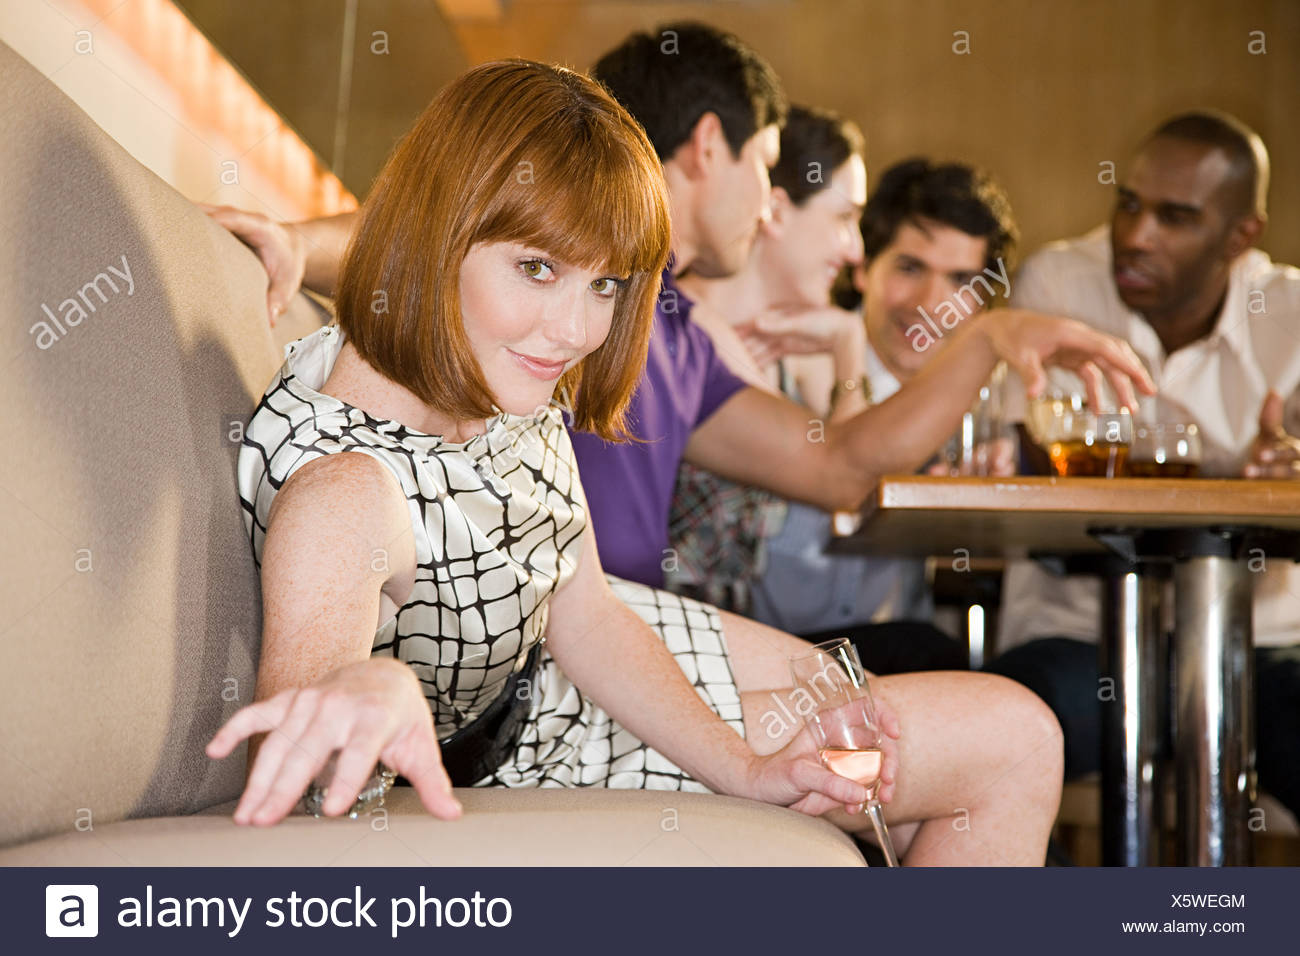 Young woman in a bar with friends - Stock Image